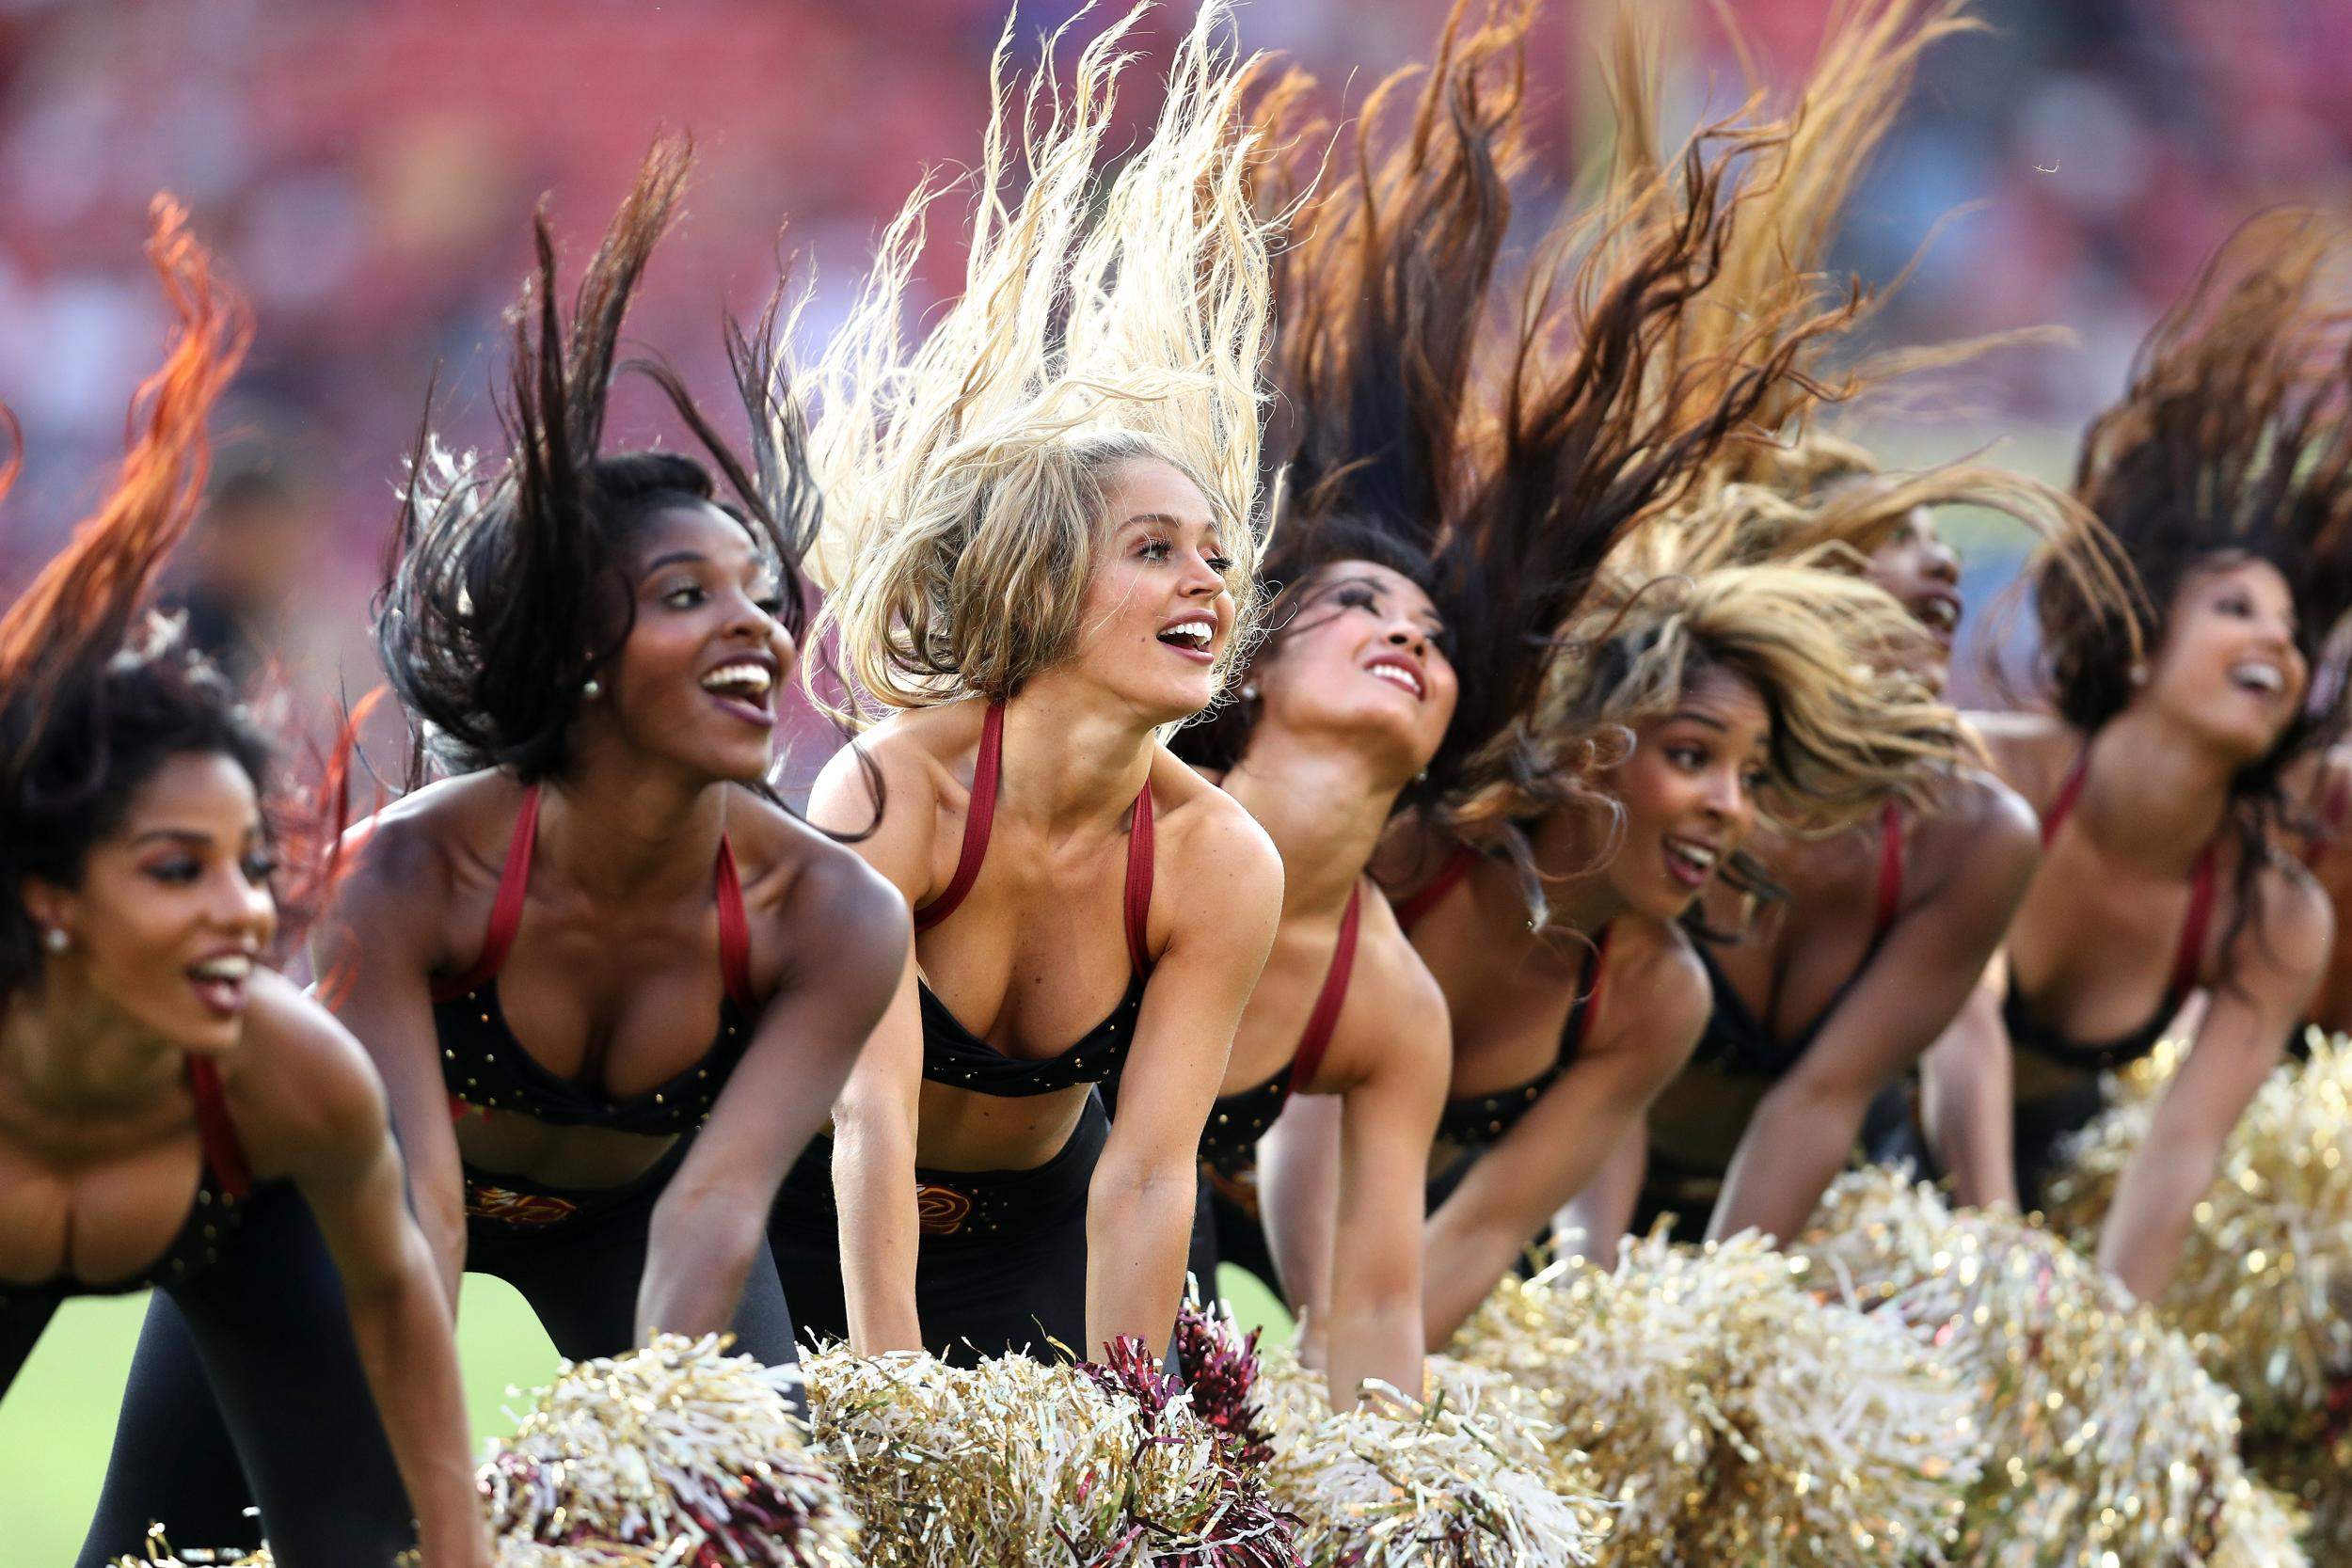 46cd6c2392627 NFL cheerleaders reportedly forced to pose topless in front of donors